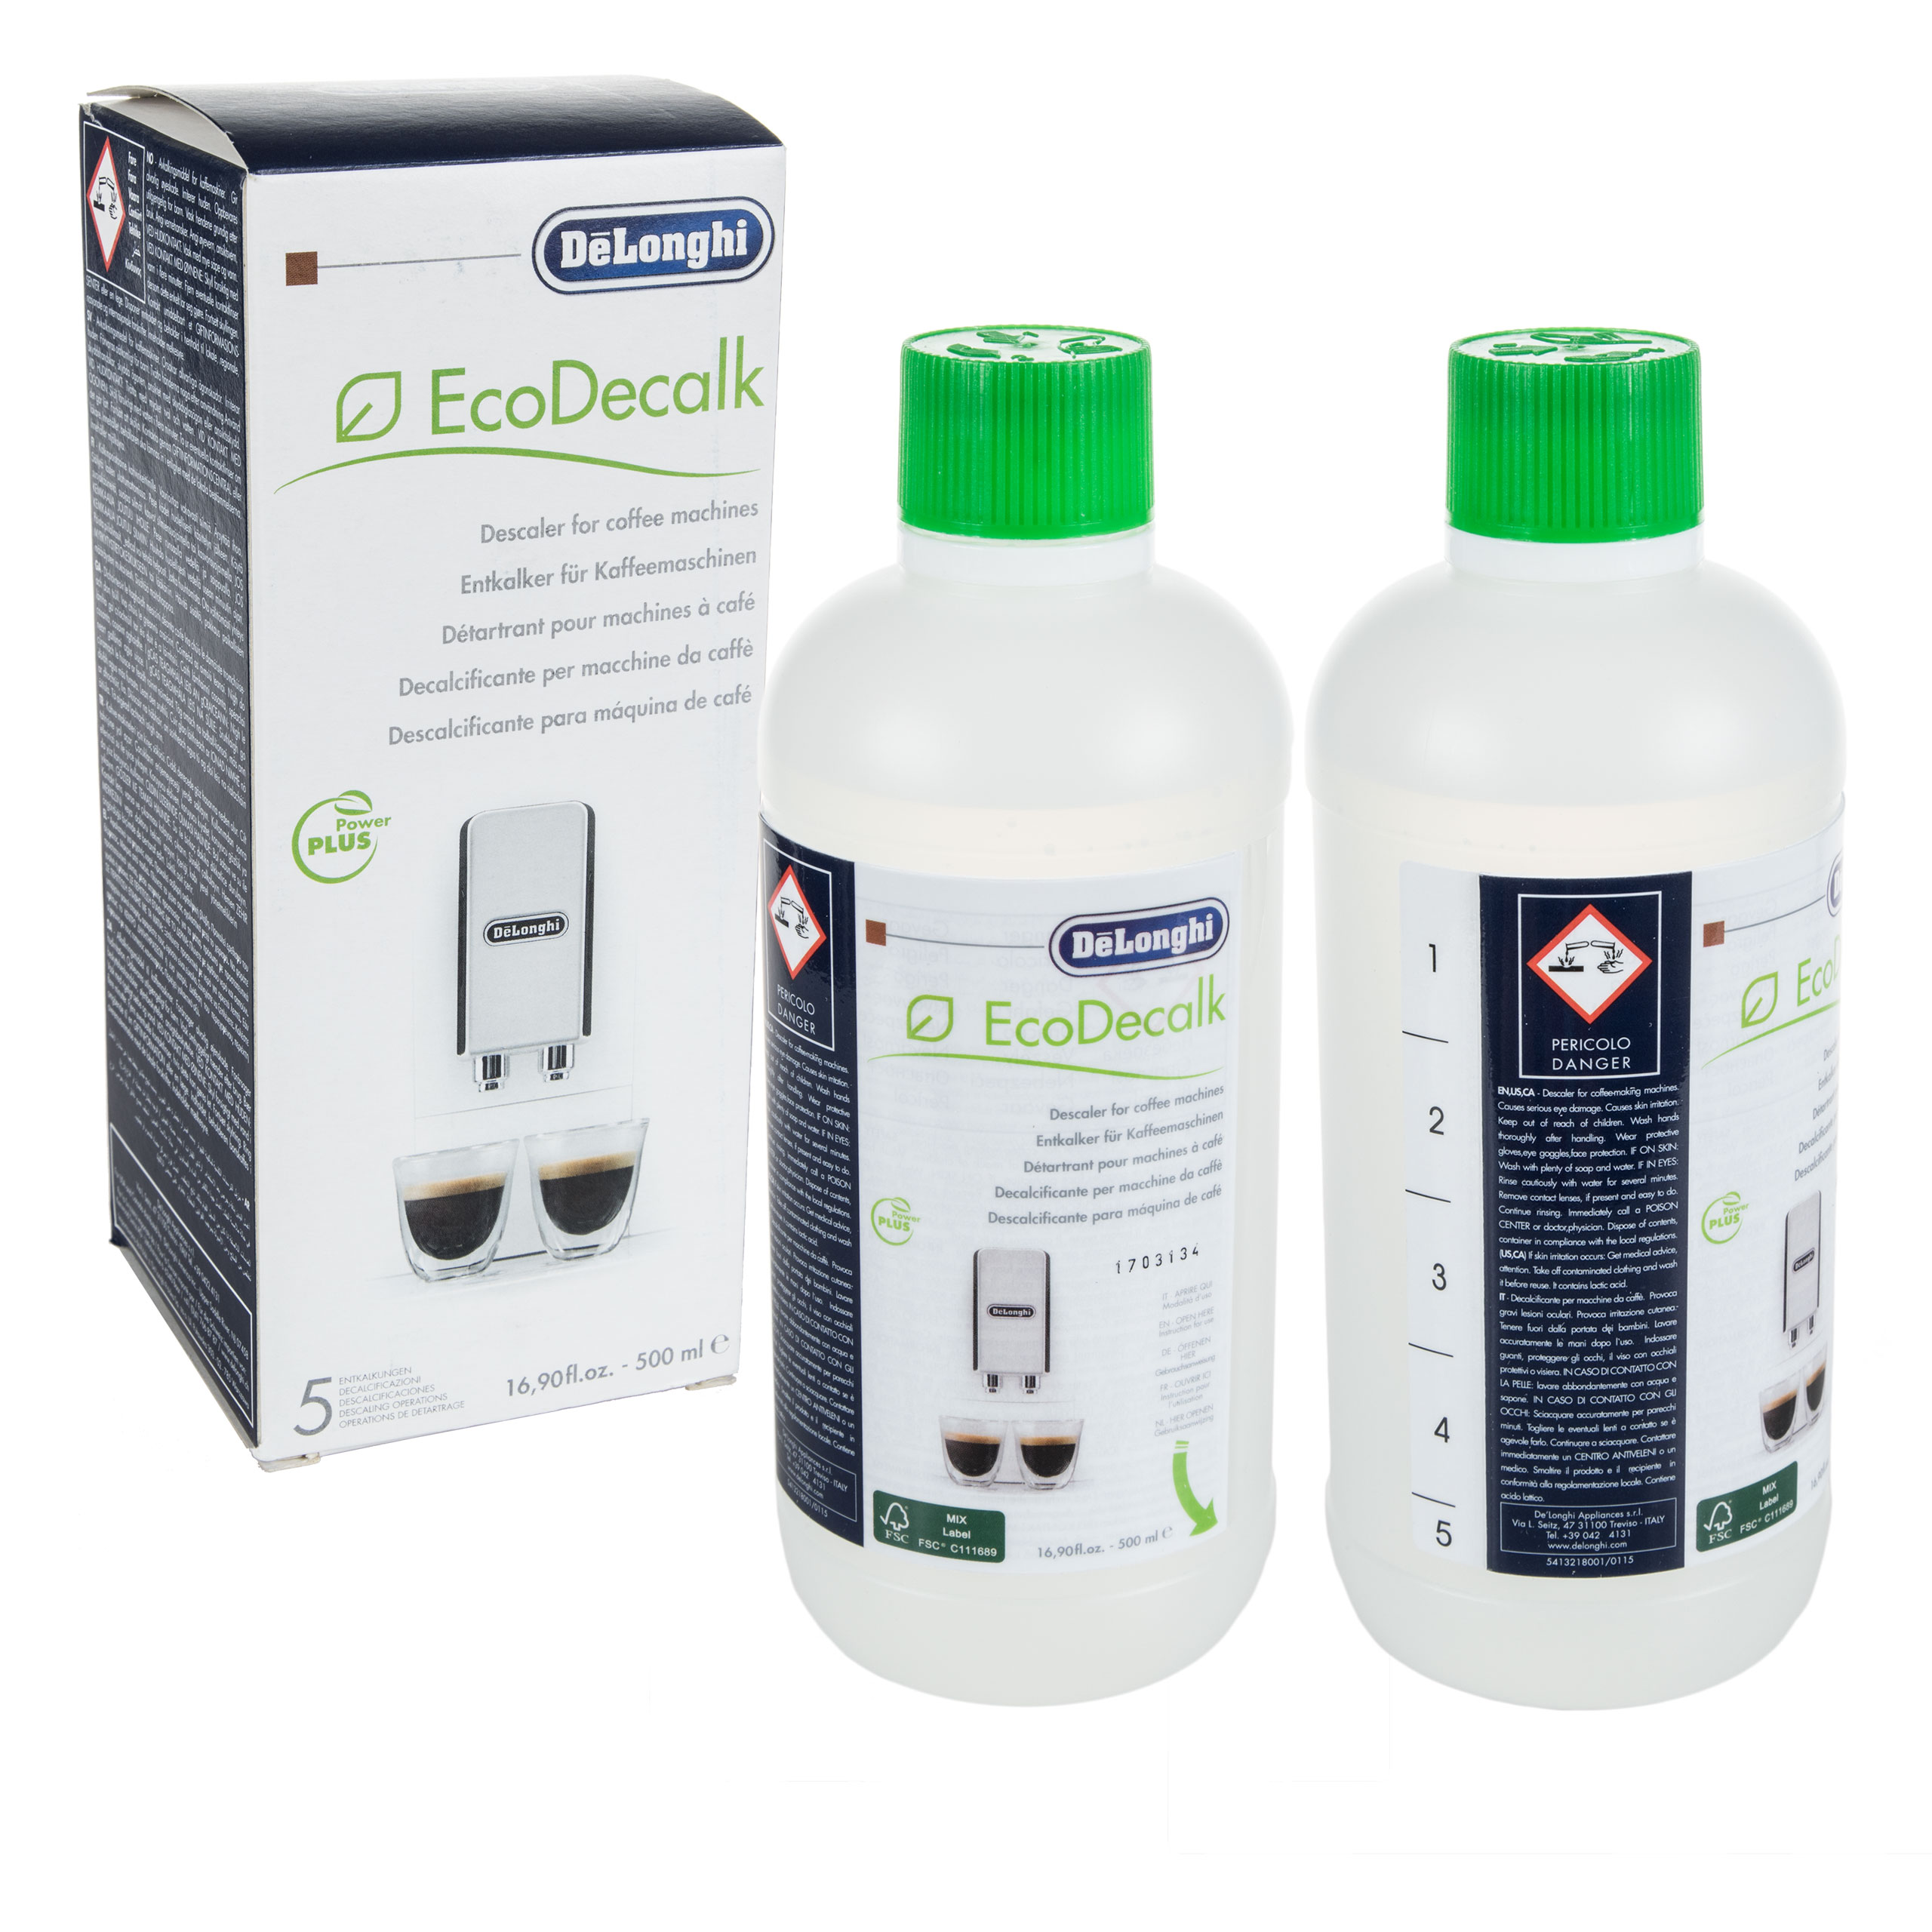 Item Packaged DeLonghi EcoDecalk DESCALER 500 ml